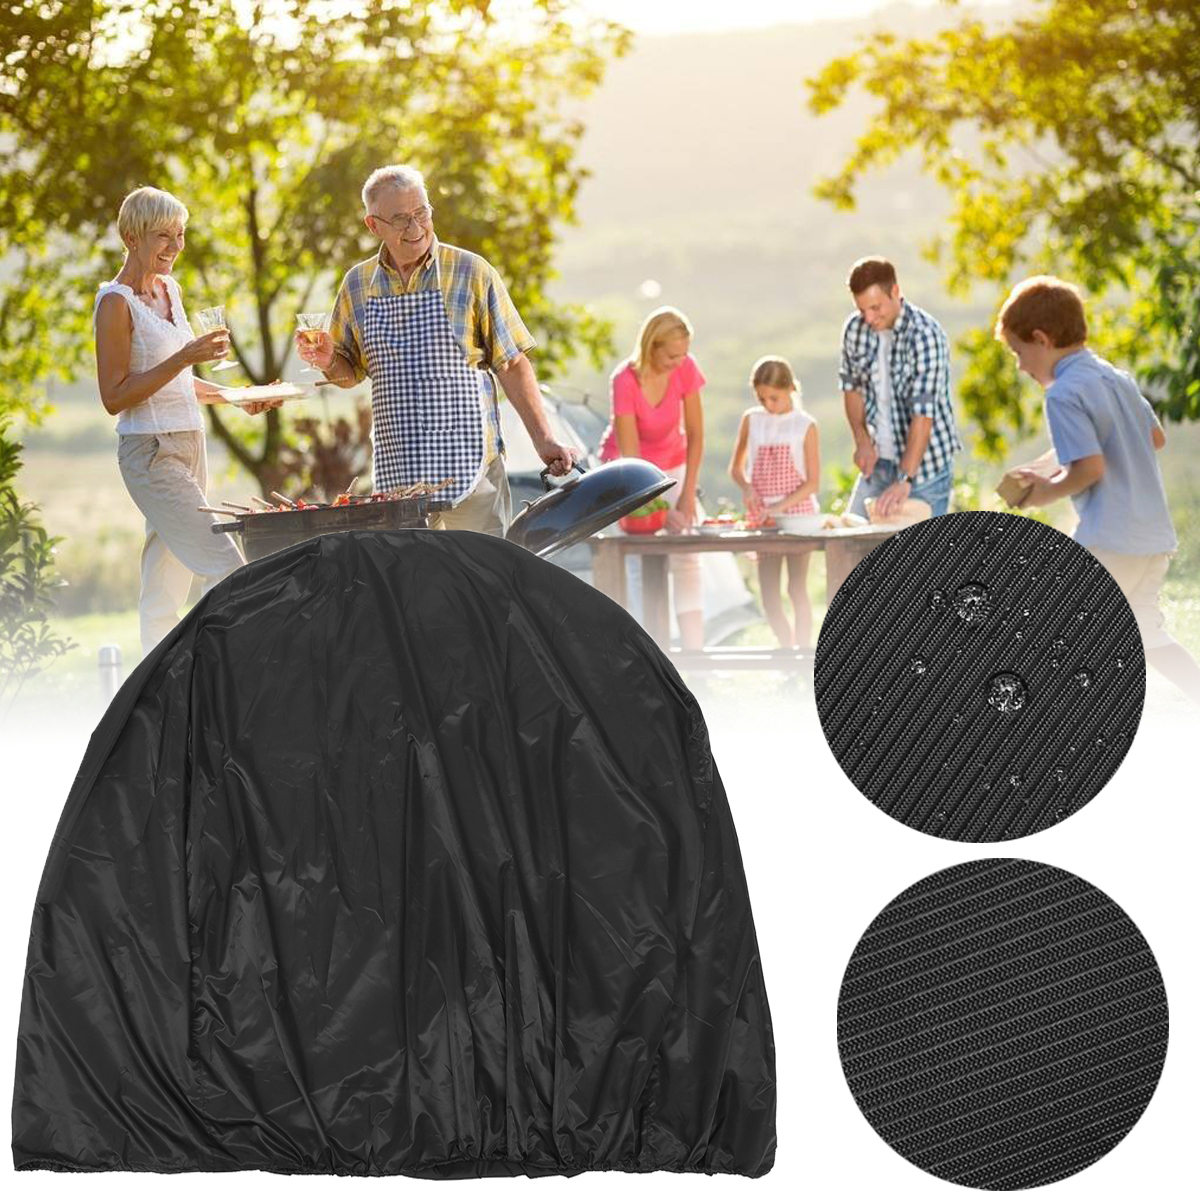 120x47.5x90cm BBQ Grill Cover Outdoor Picnic Waterproof Dust Rai